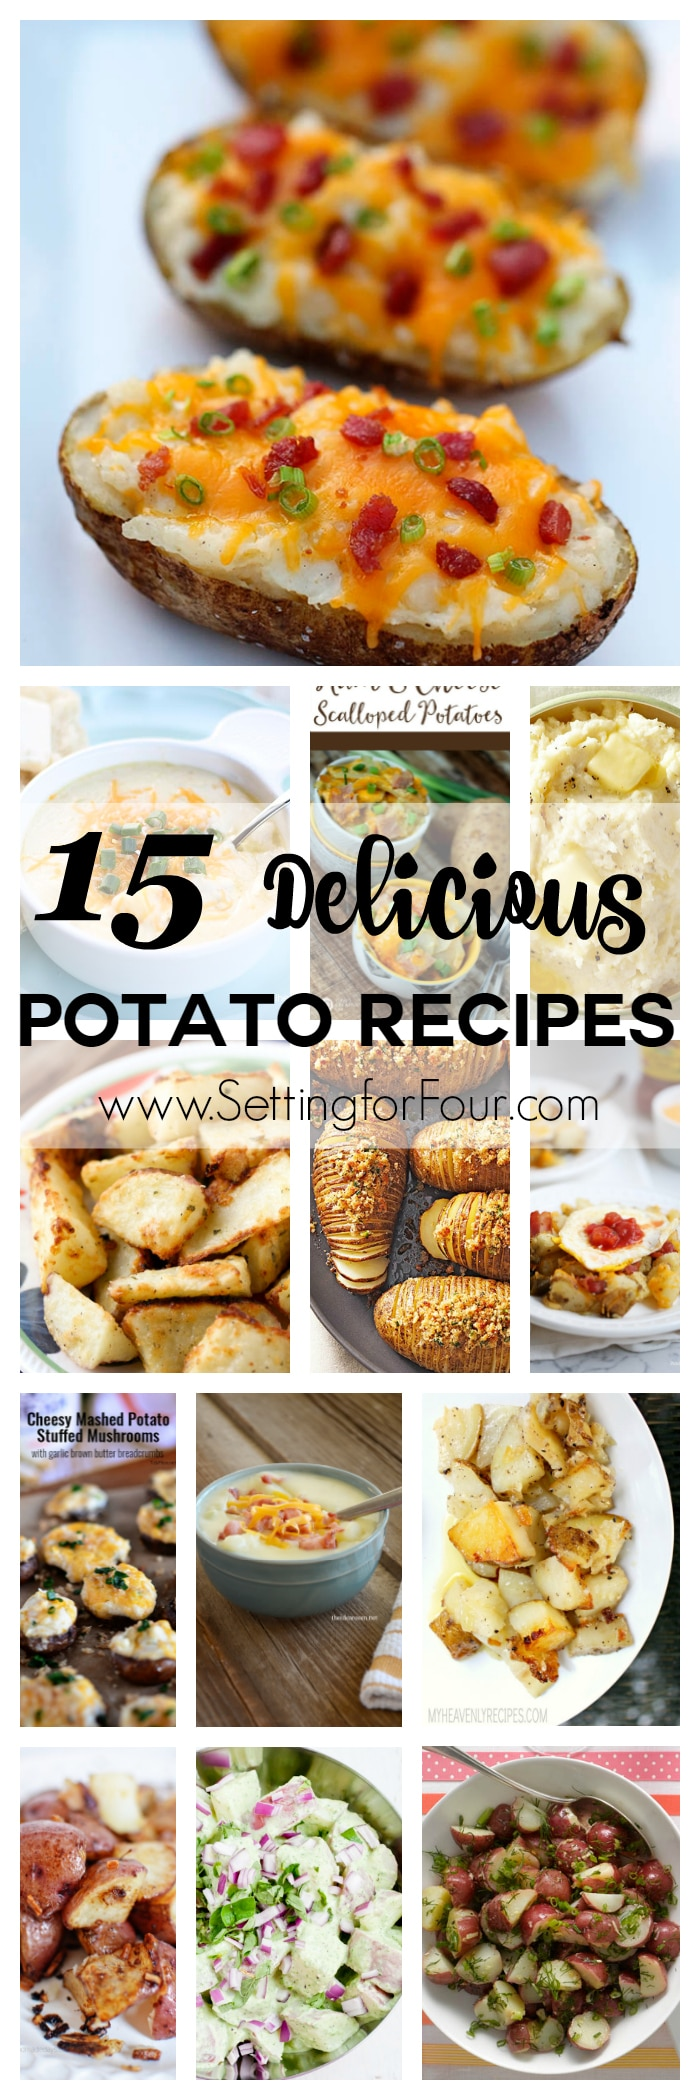 15 Delicious Potato Recipes you have to try! Includes recipes for potato casseroles, soups, baked, fried, mashed and more! www.settingforfour.com